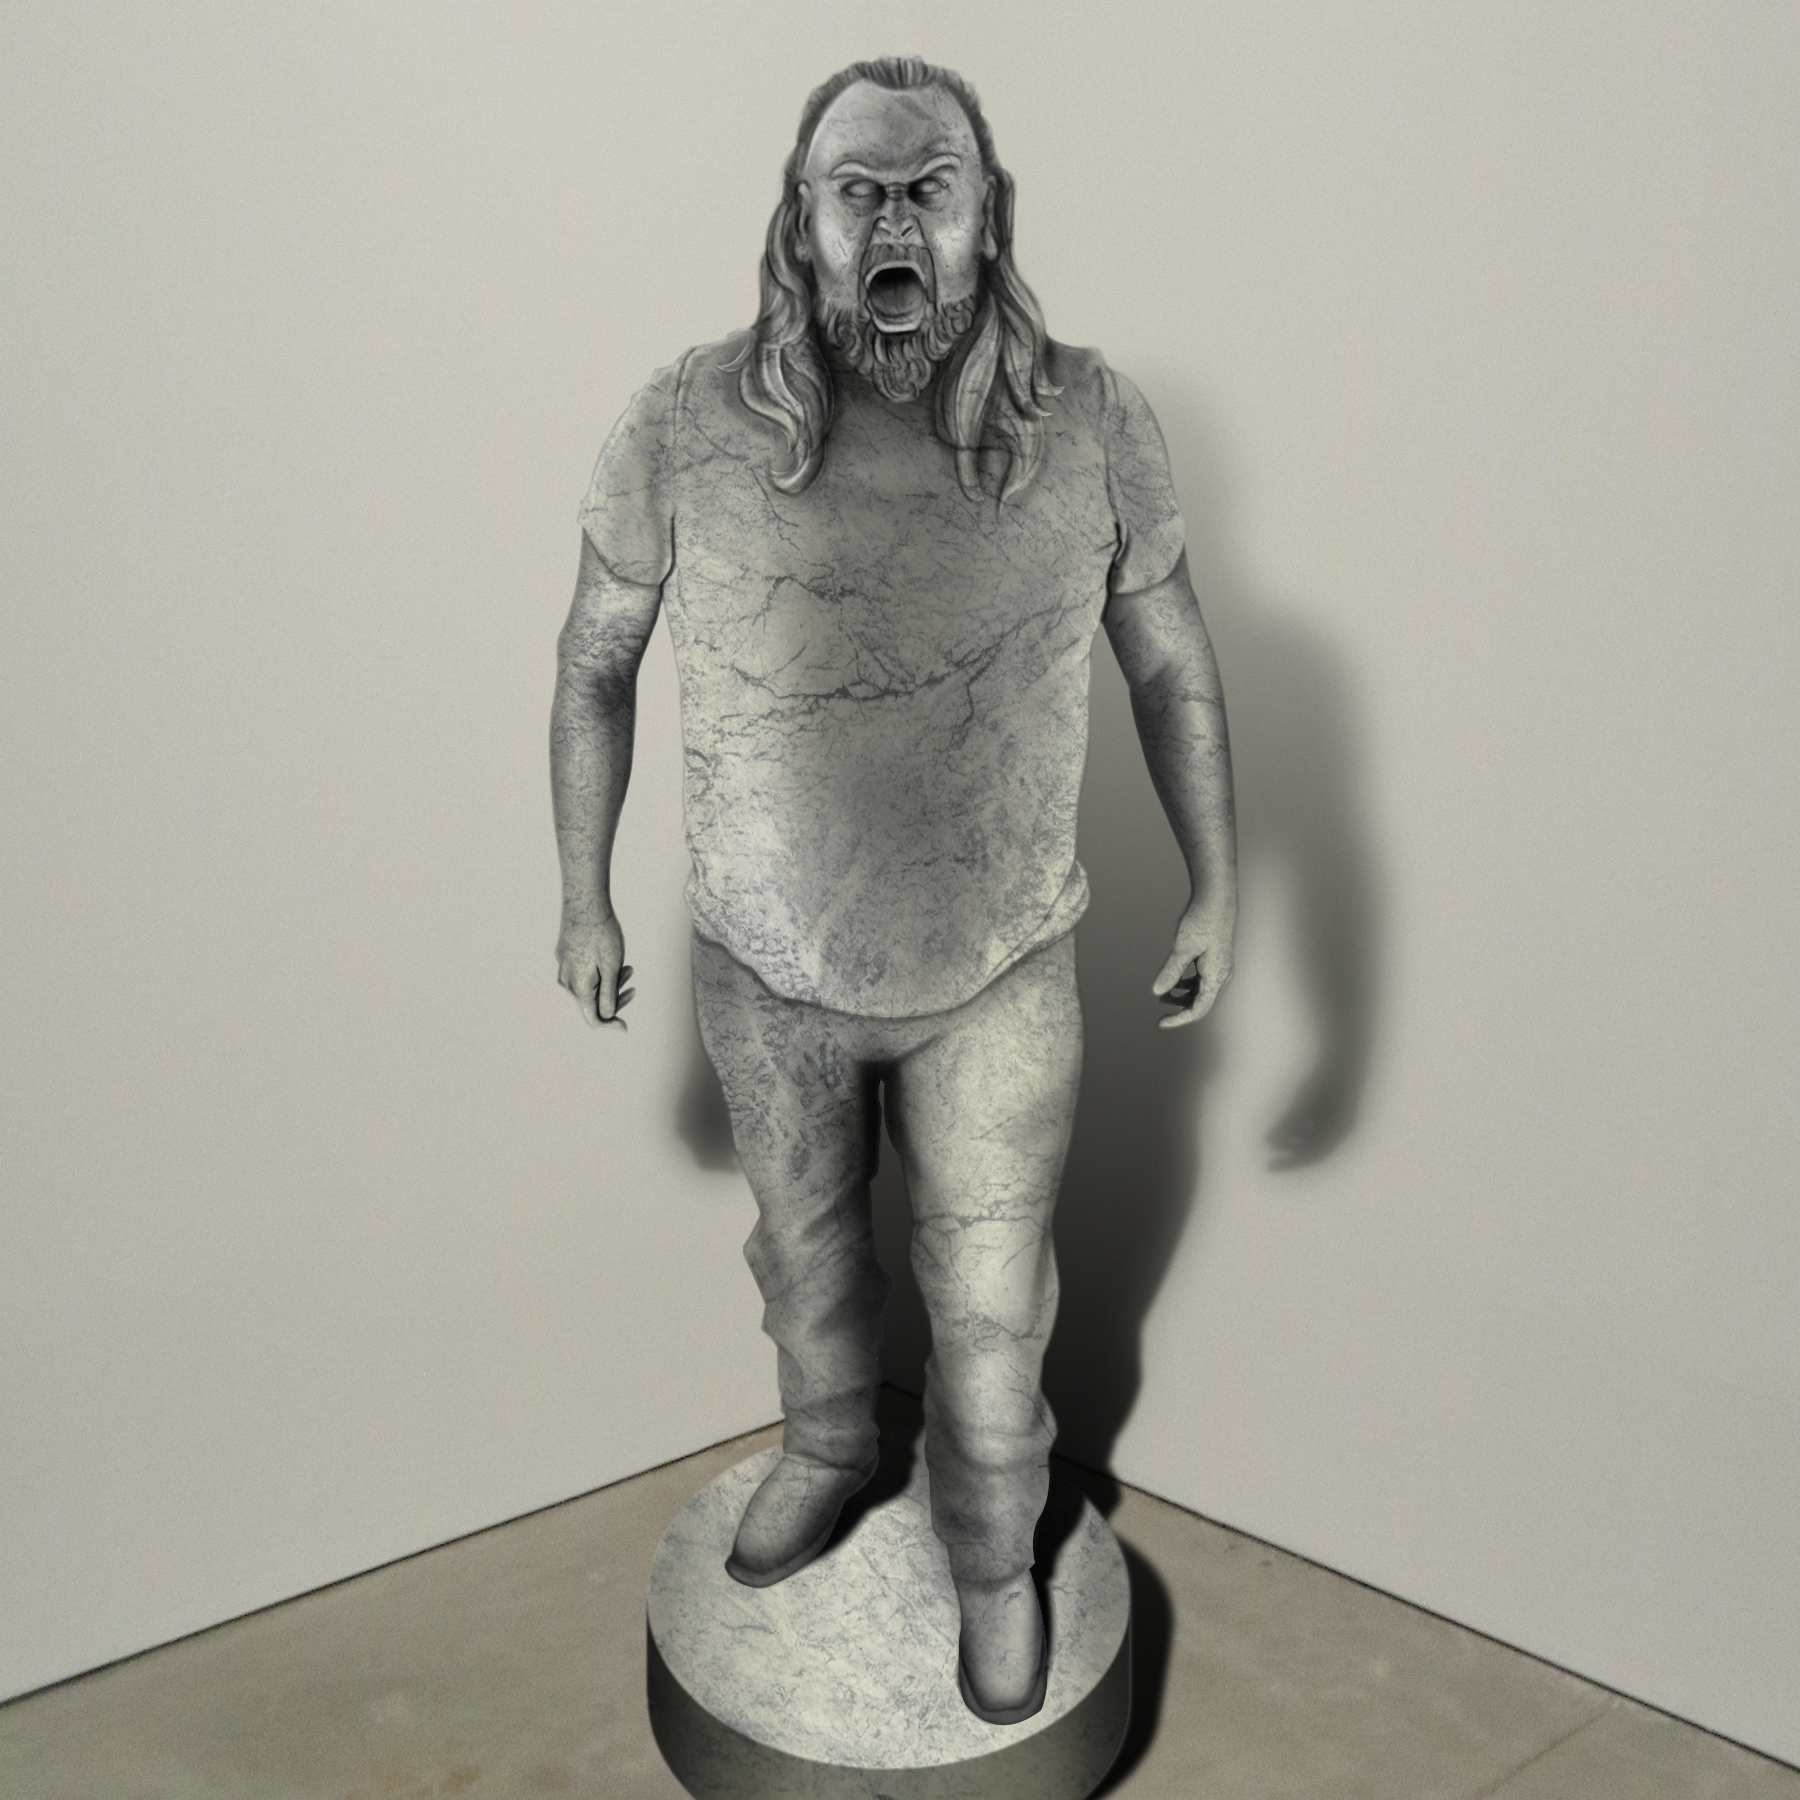 """Champ,"" marble, Institute of Contemporary Art, Boston   2018  JPG  During an installation at the Institute of Contemporary Art in Boston, viewers were invited to imagine themselves as statues in the ICA's permanent collection. Participants were photographed posing as a statue they felt represented themselves, created a name for their fictional statue, and selected a stone from which their statue would be made. Professional and amateur digital artists were commissioned to create renderings of the statues, which were superimposed on photos of the ICA's permanent collection gallery space."